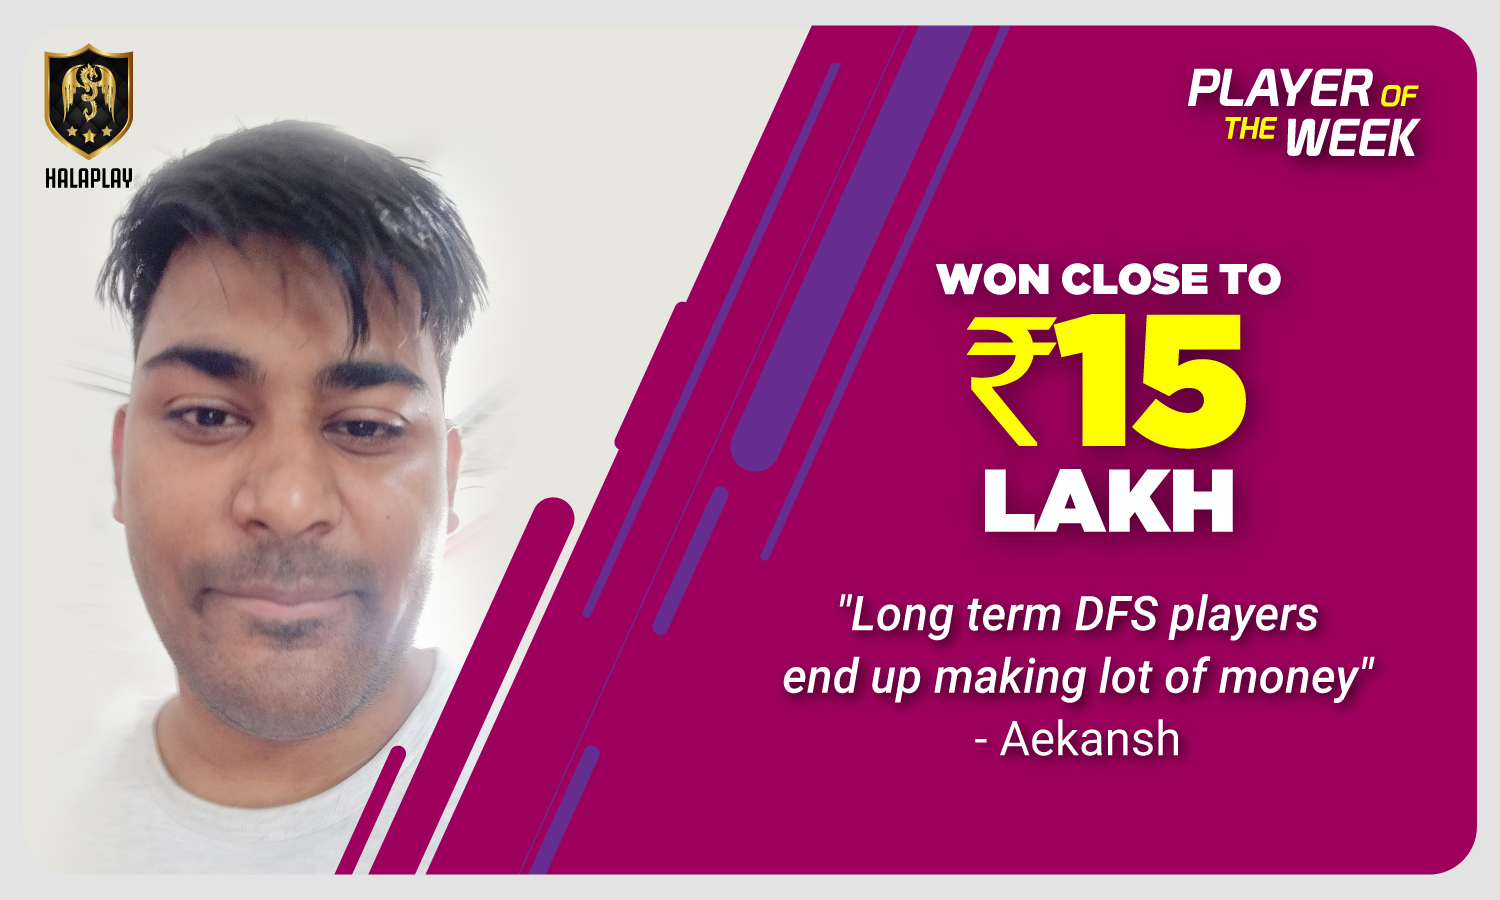 The first dime of ₹15 Lakh HalaPlay winnings came from Reverse Fantasy